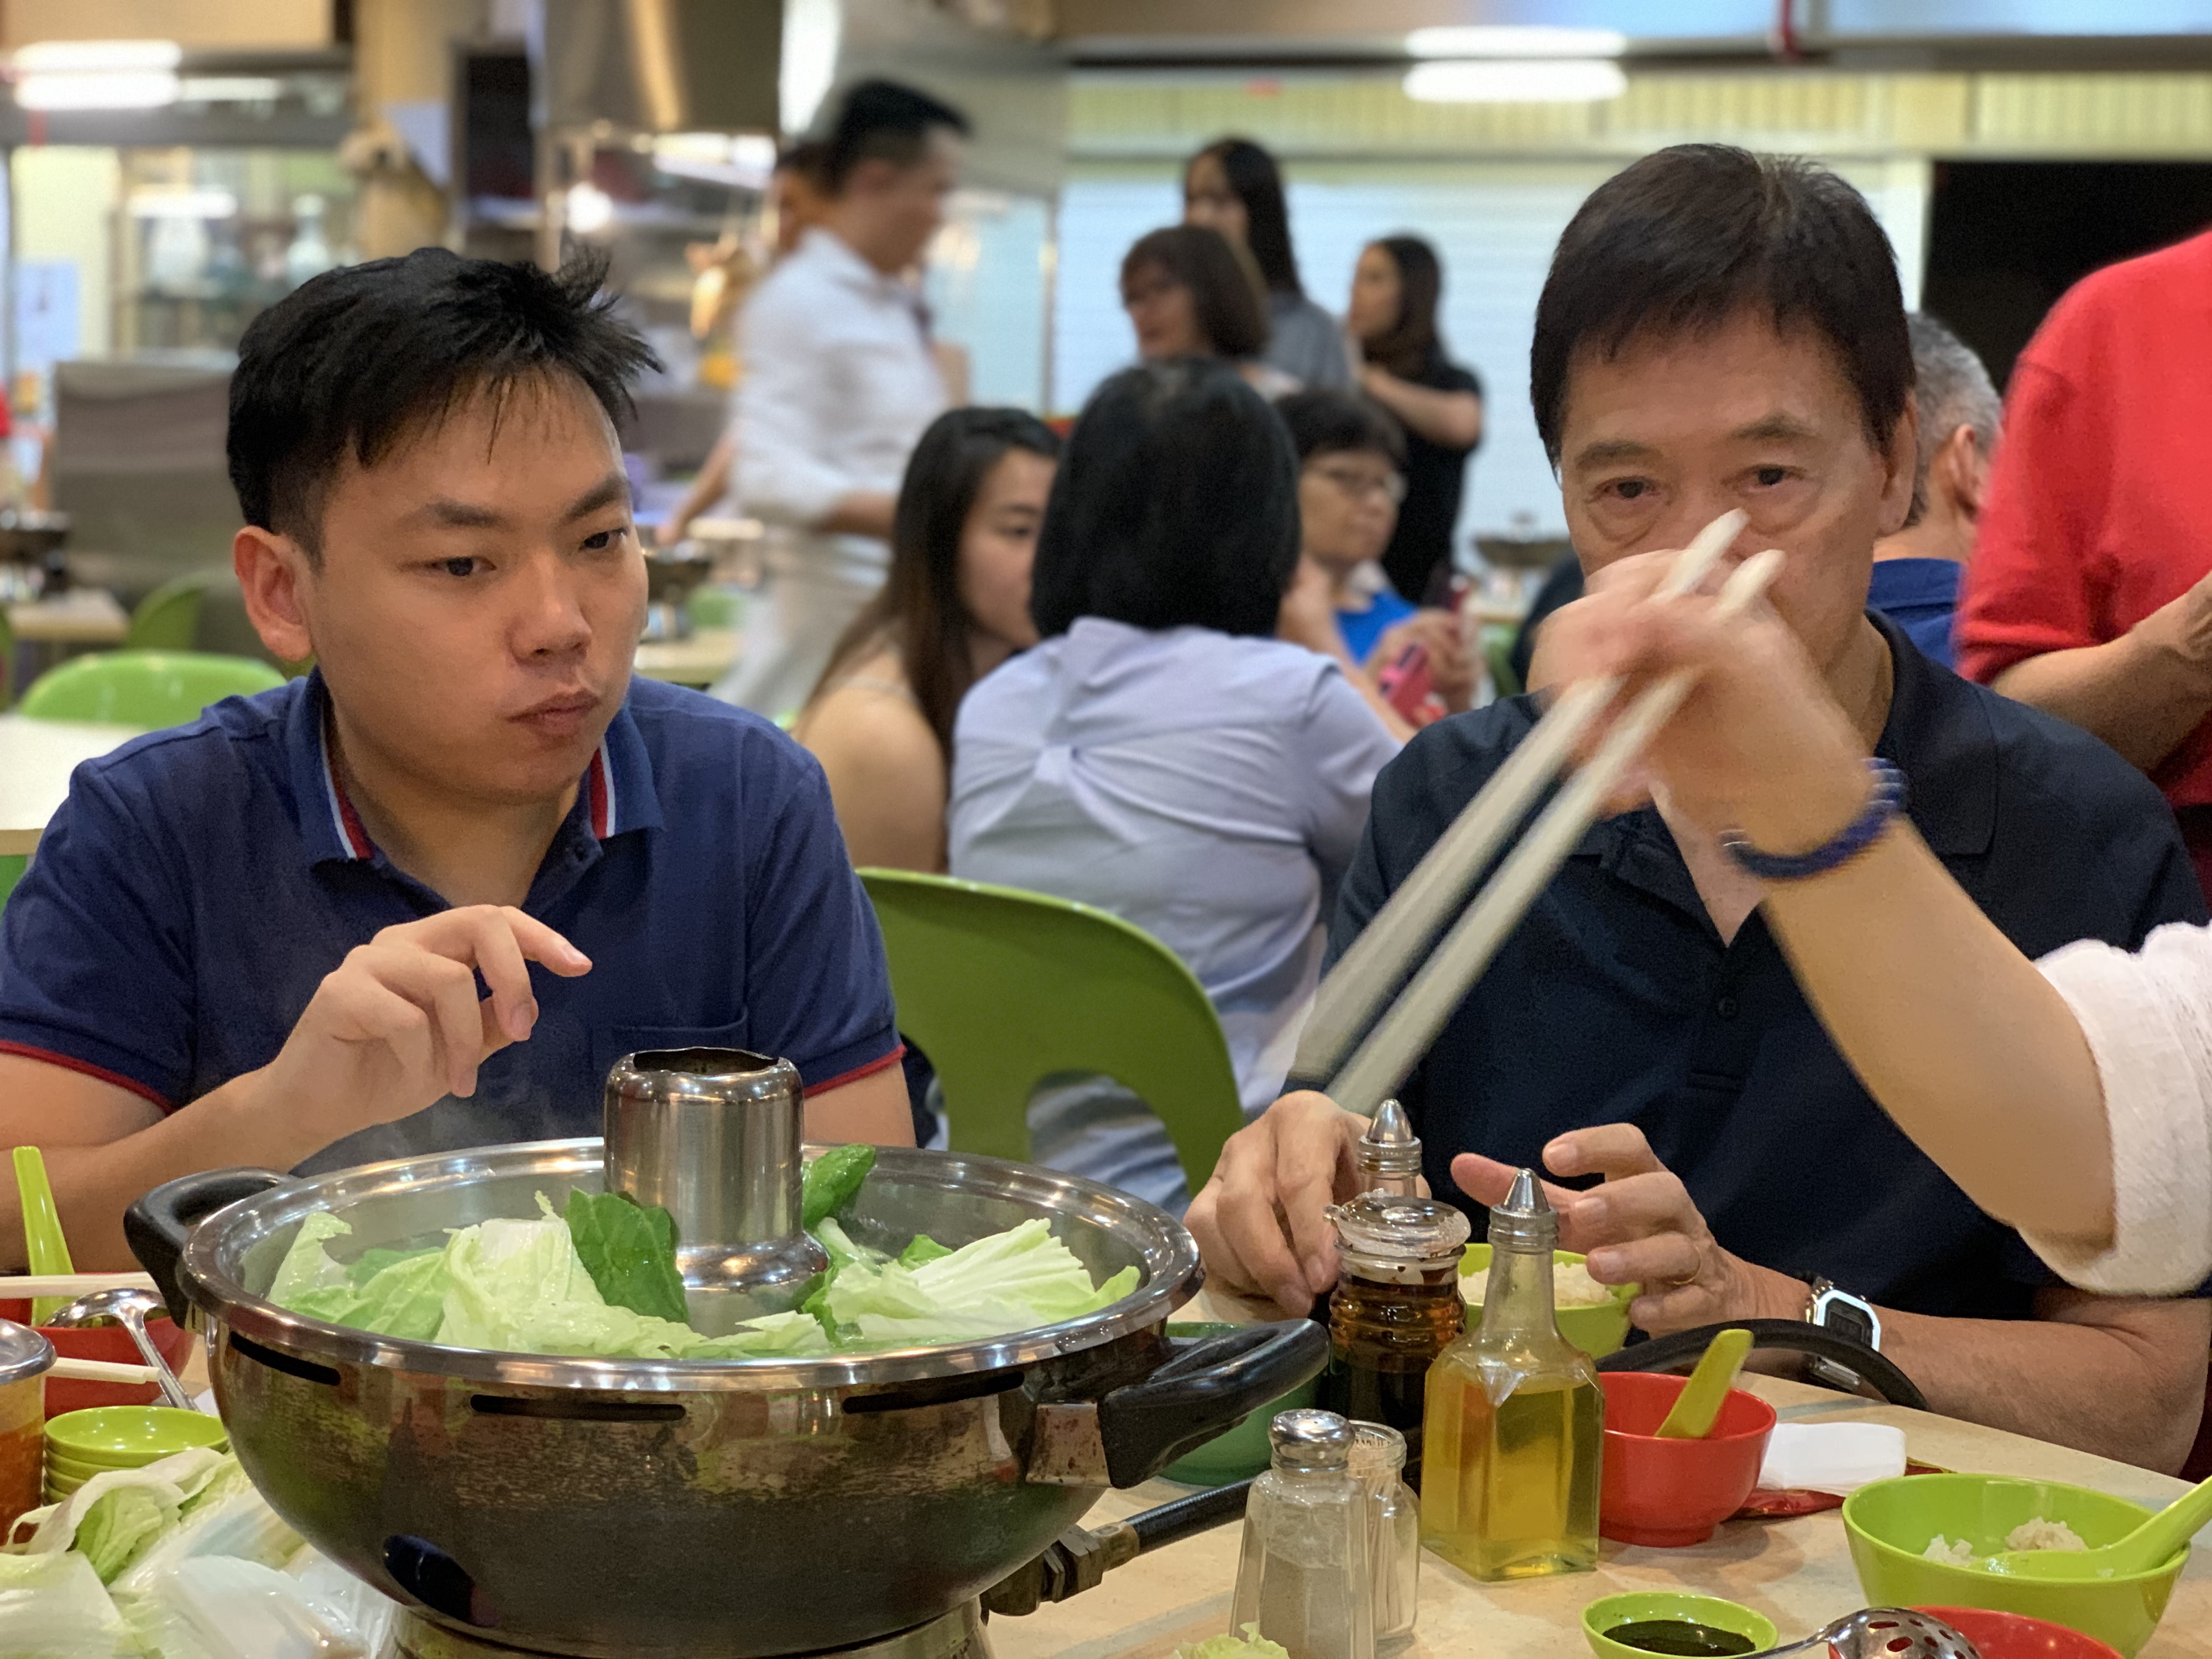 Singapore has an amazing and irrepressible food culture